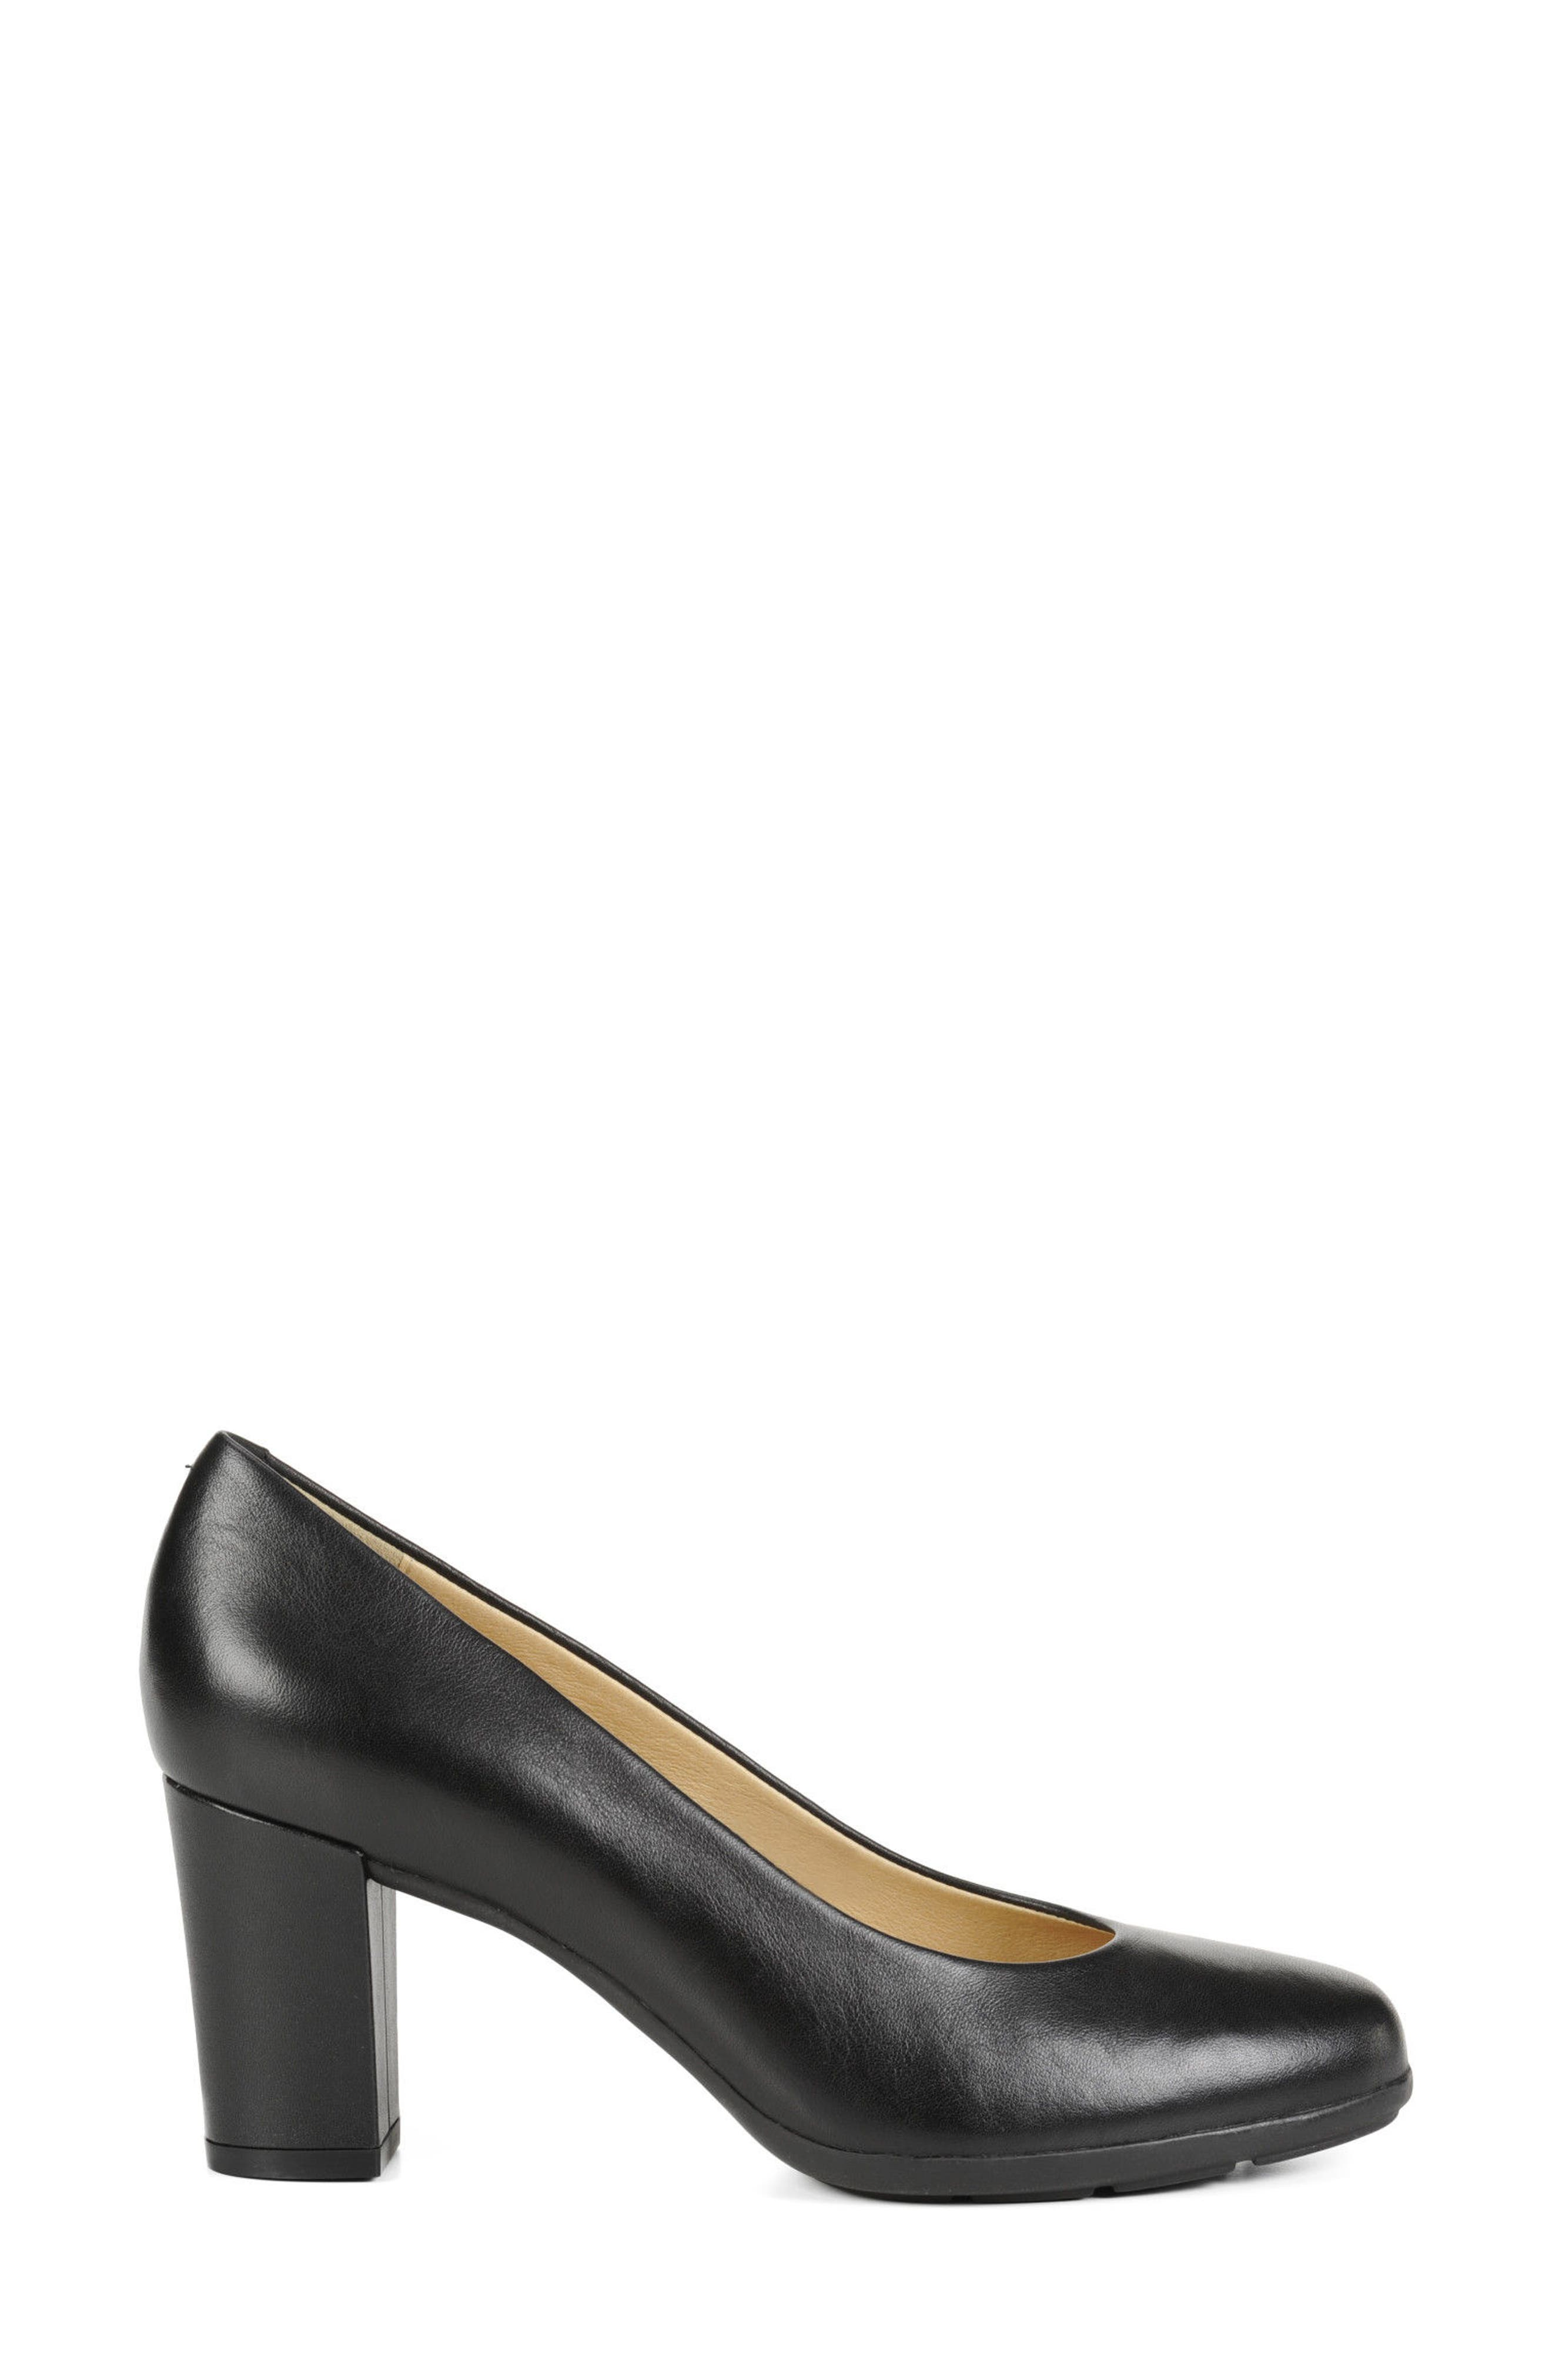 Annya Pump,                             Alternate thumbnail 3, color,                             BLACK NAPPA LEATHER